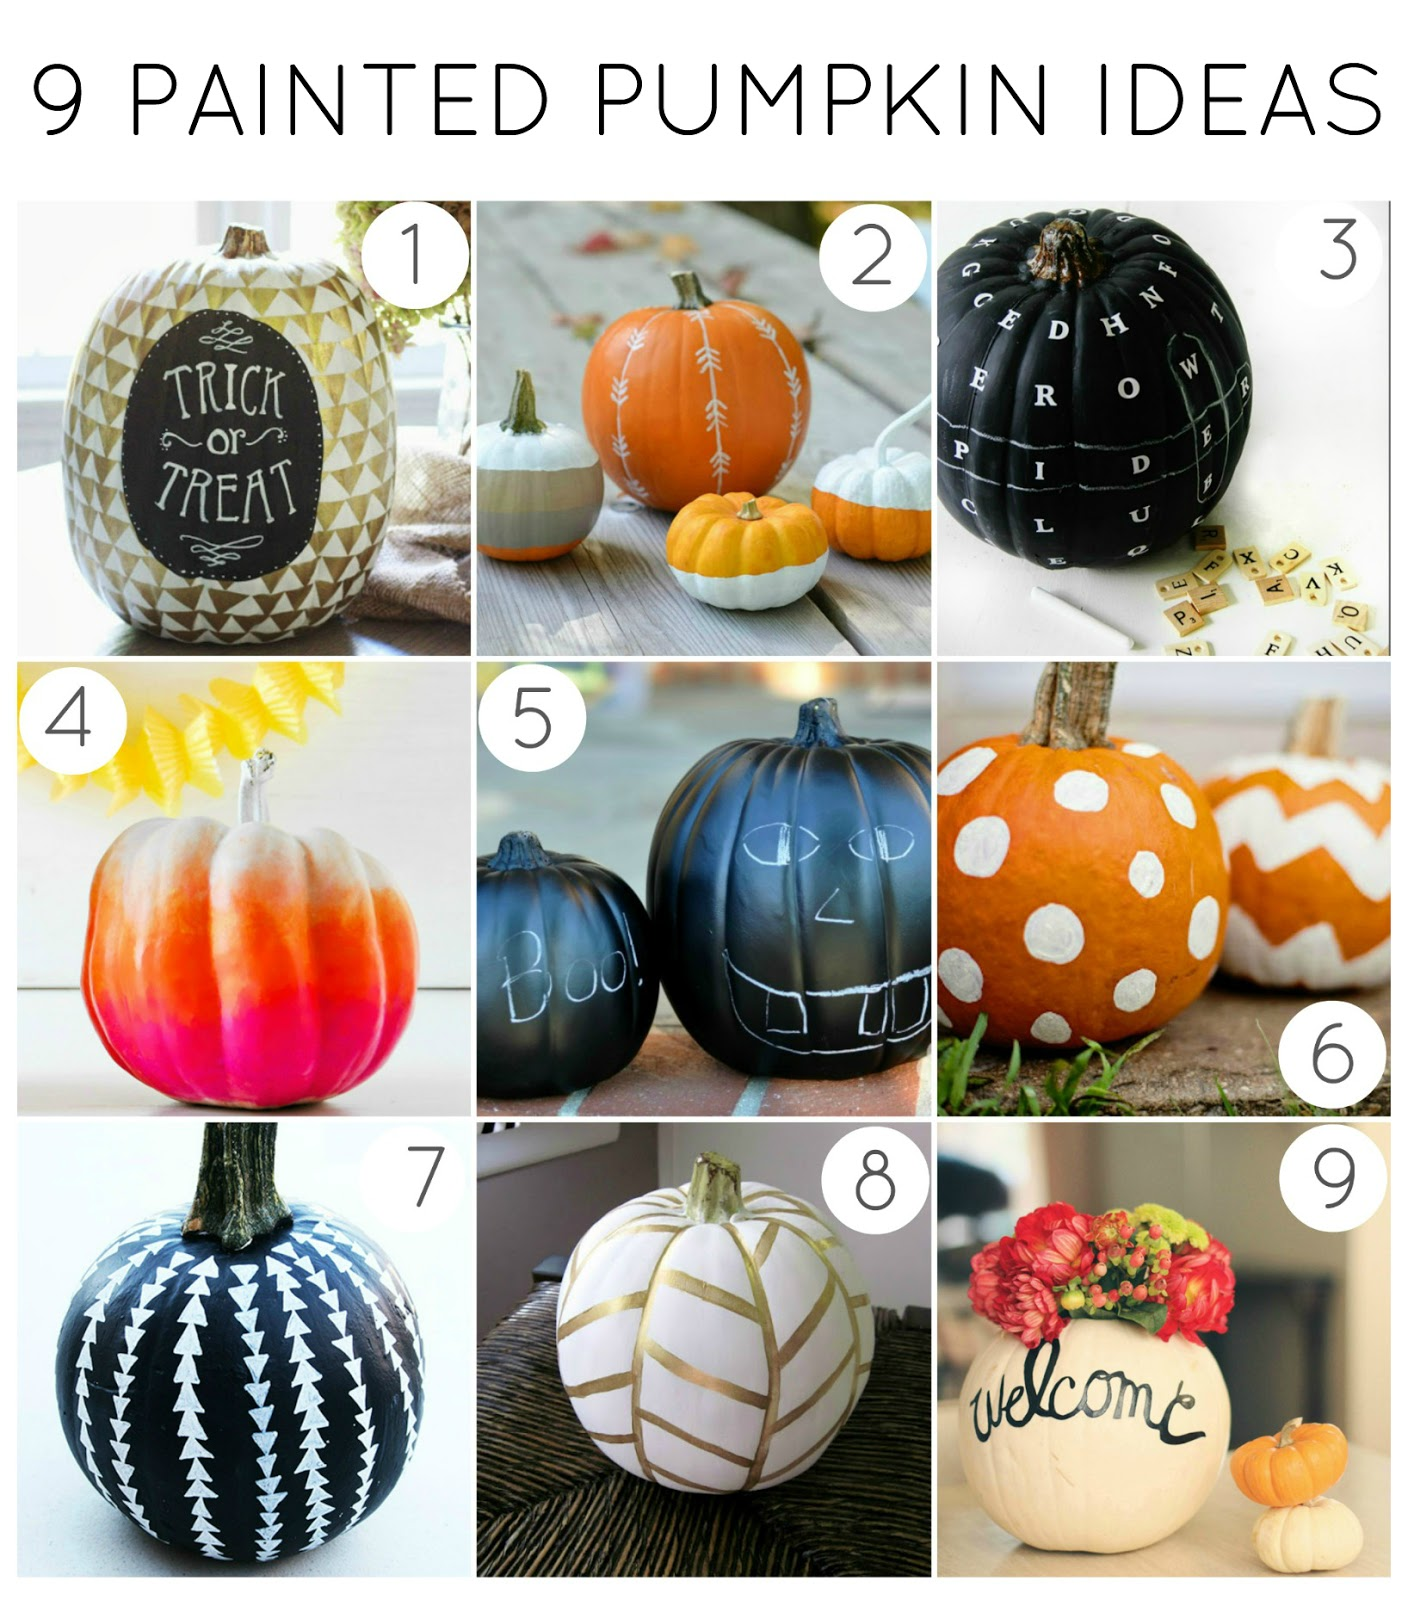 weekend inspiration full on fall and pumpkin time plus favorite painted pumpkins create enjoy. Black Bedroom Furniture Sets. Home Design Ideas